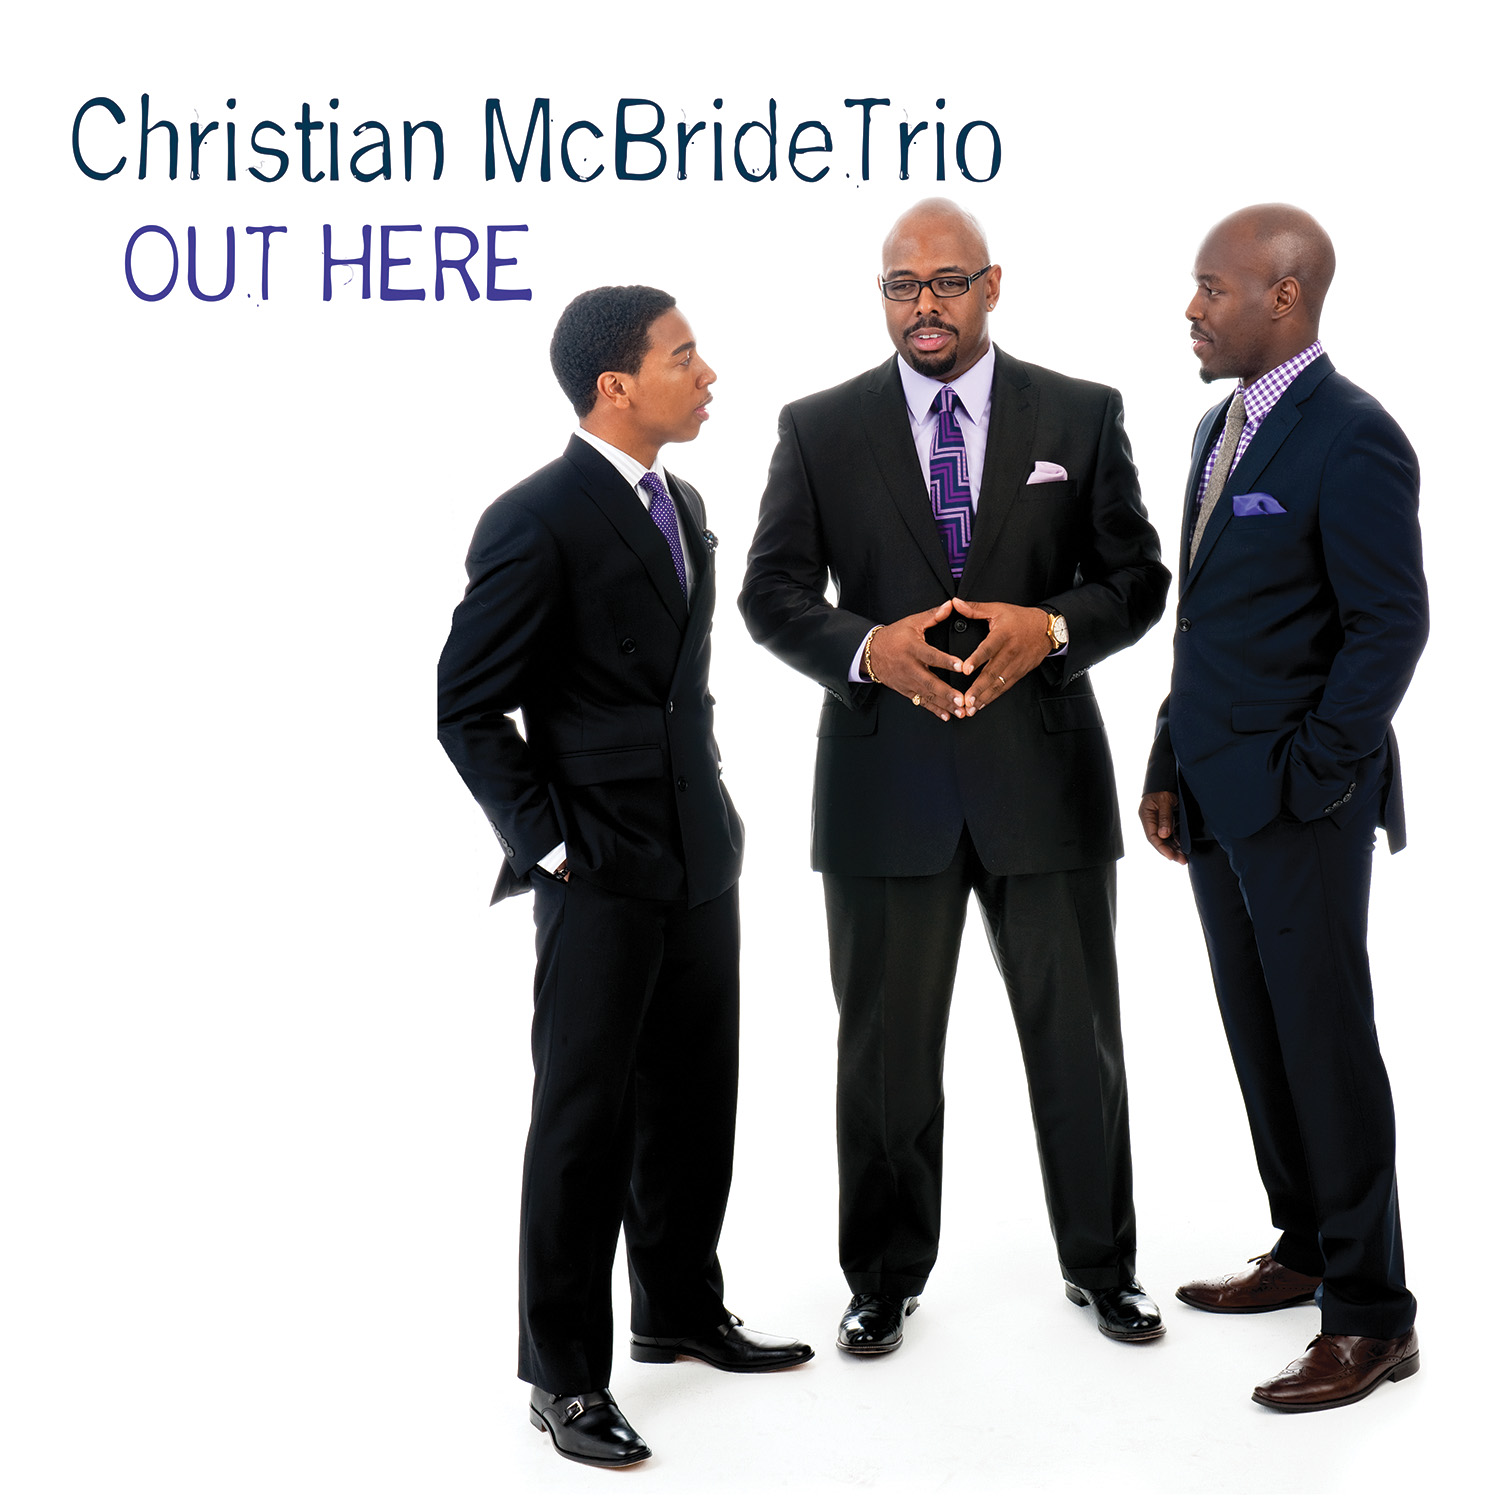 Christian McBride Trio - Out Here - Cover Image